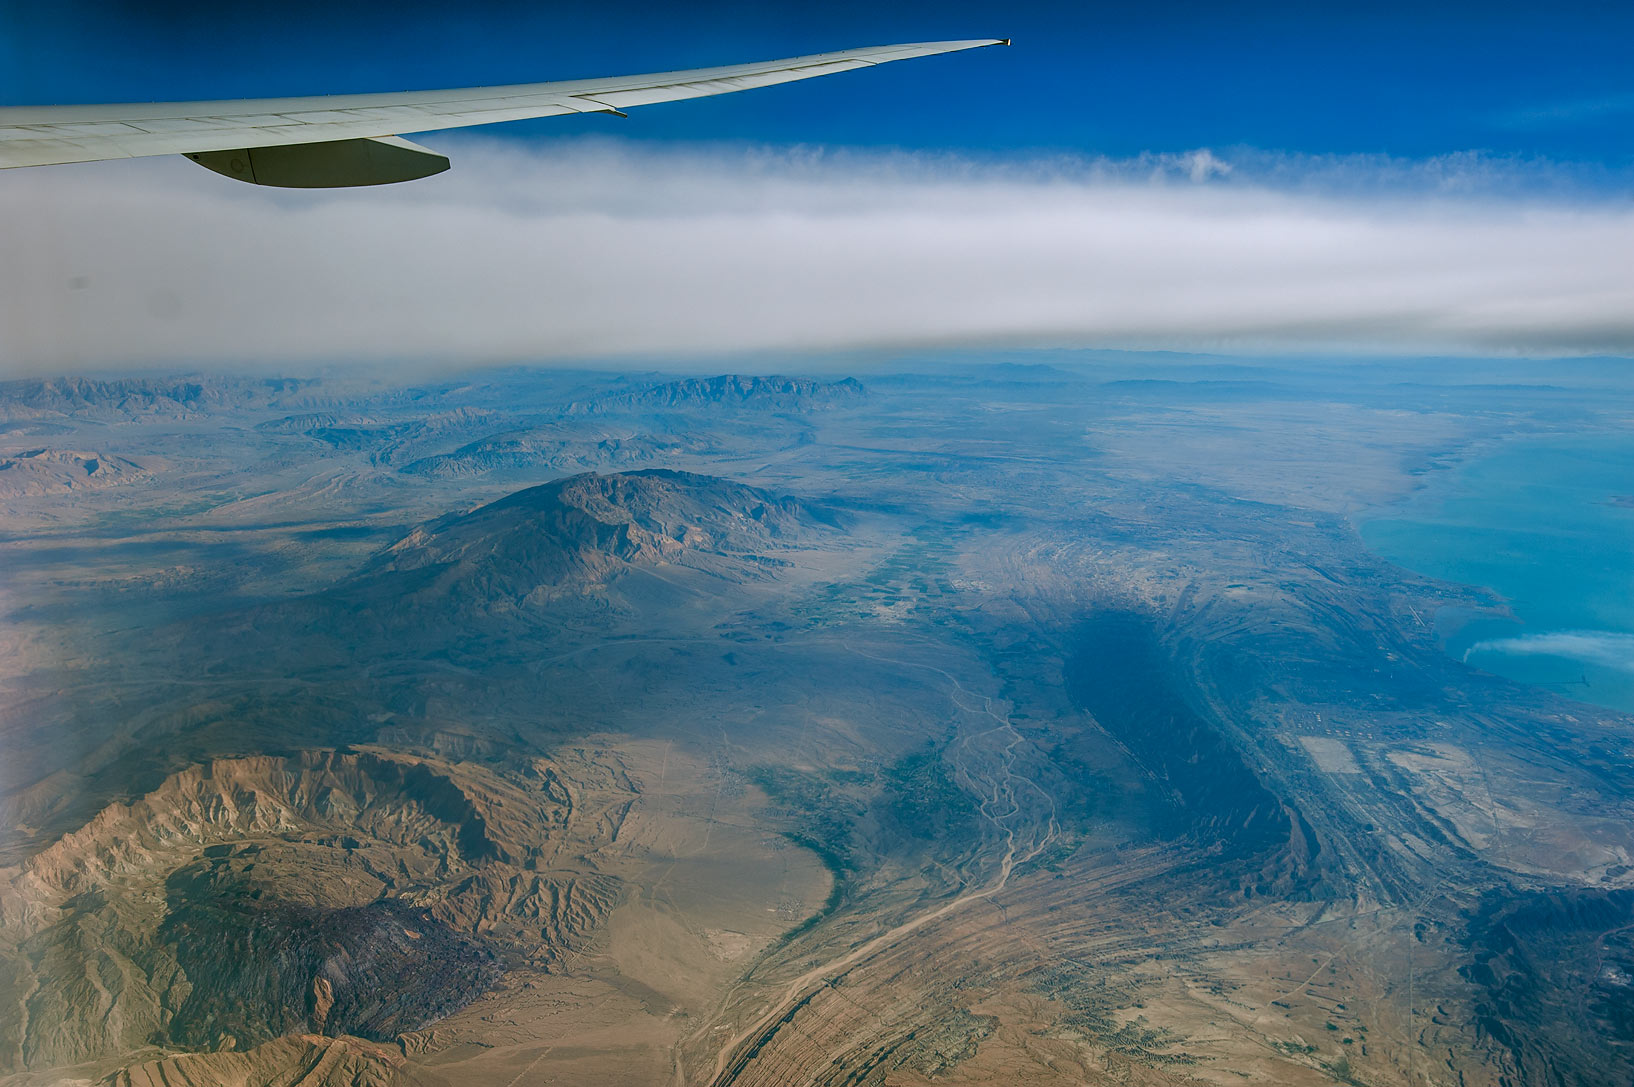 Zagros Mountains in southern Iran, near Hormozgan...plane from Dubai shortly after takeoff